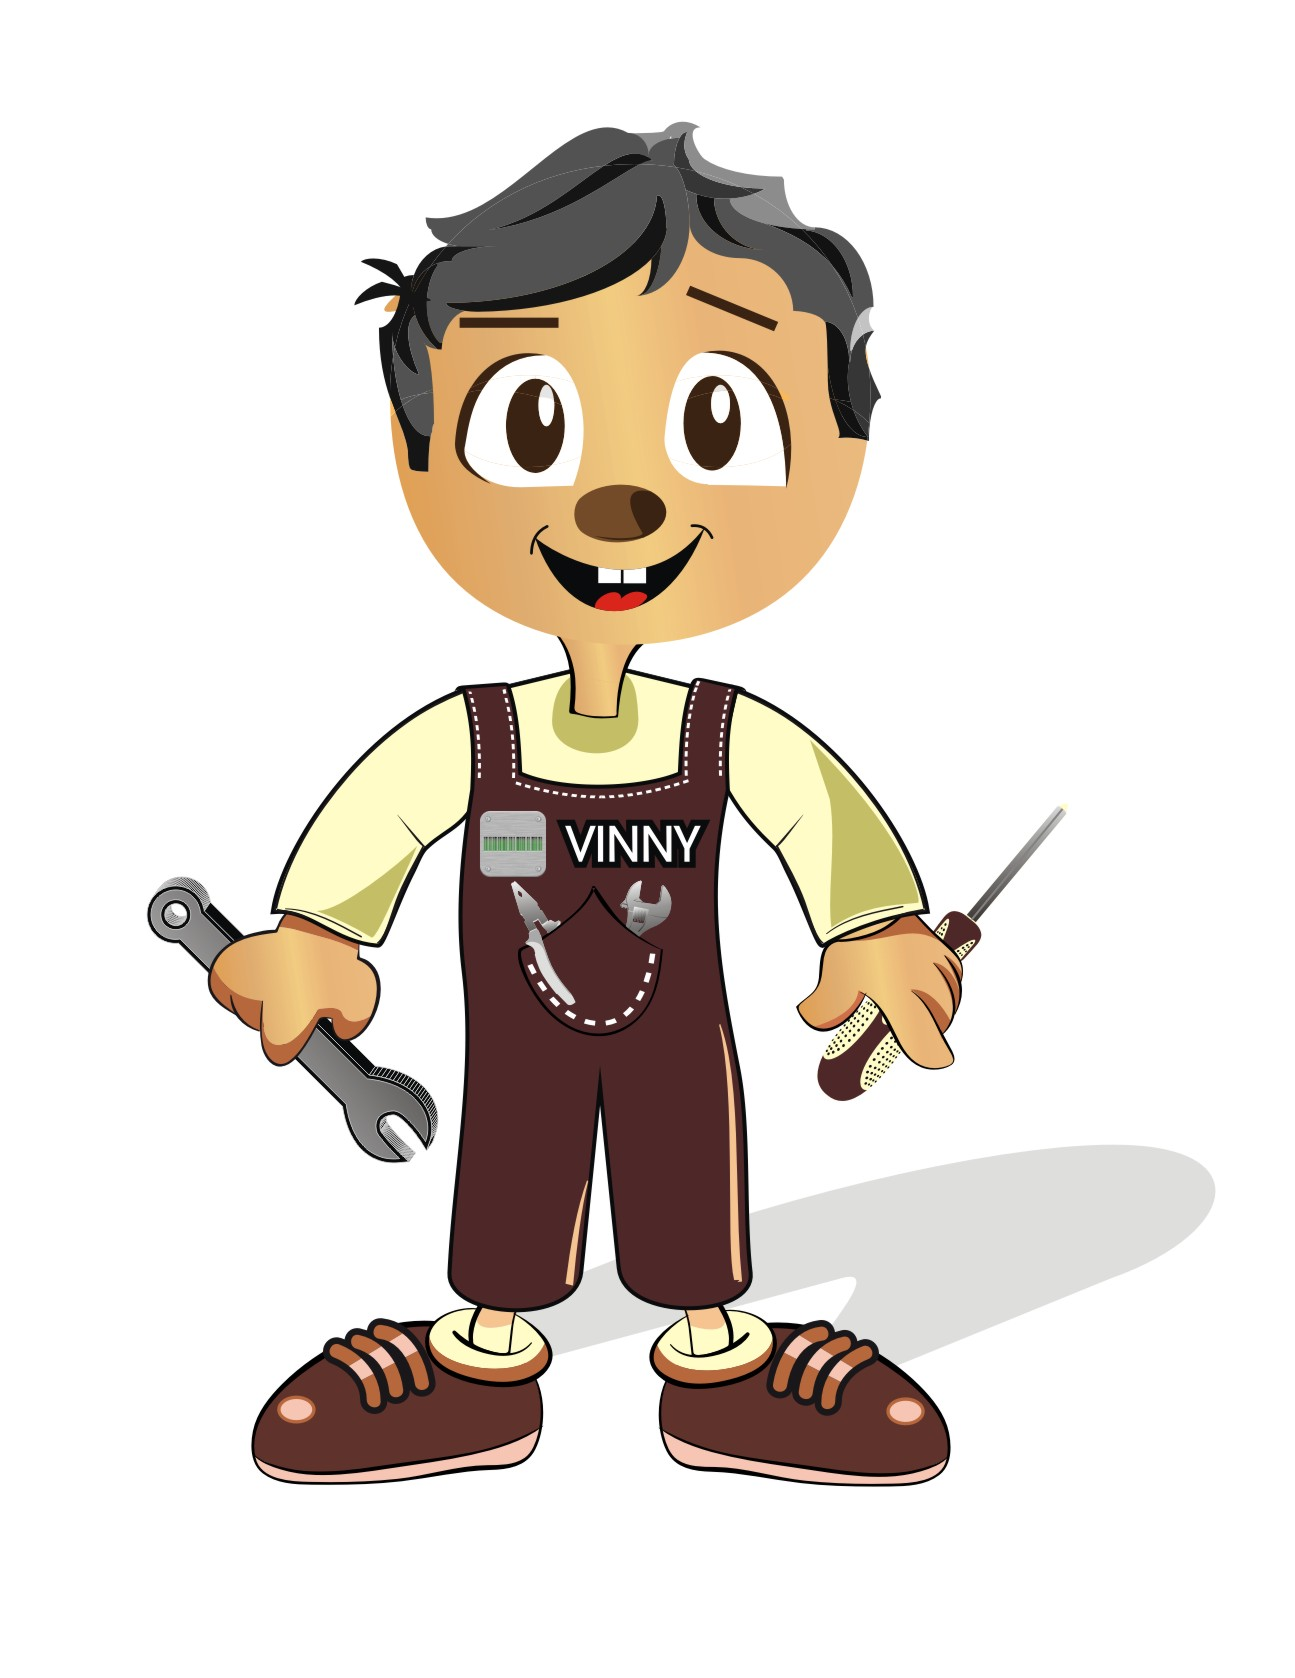 Logo Design by Crystal Desizns - Entry No. 53 in the Logo Design Contest Unique CHARACTER logo Design Wanted for Vinny.